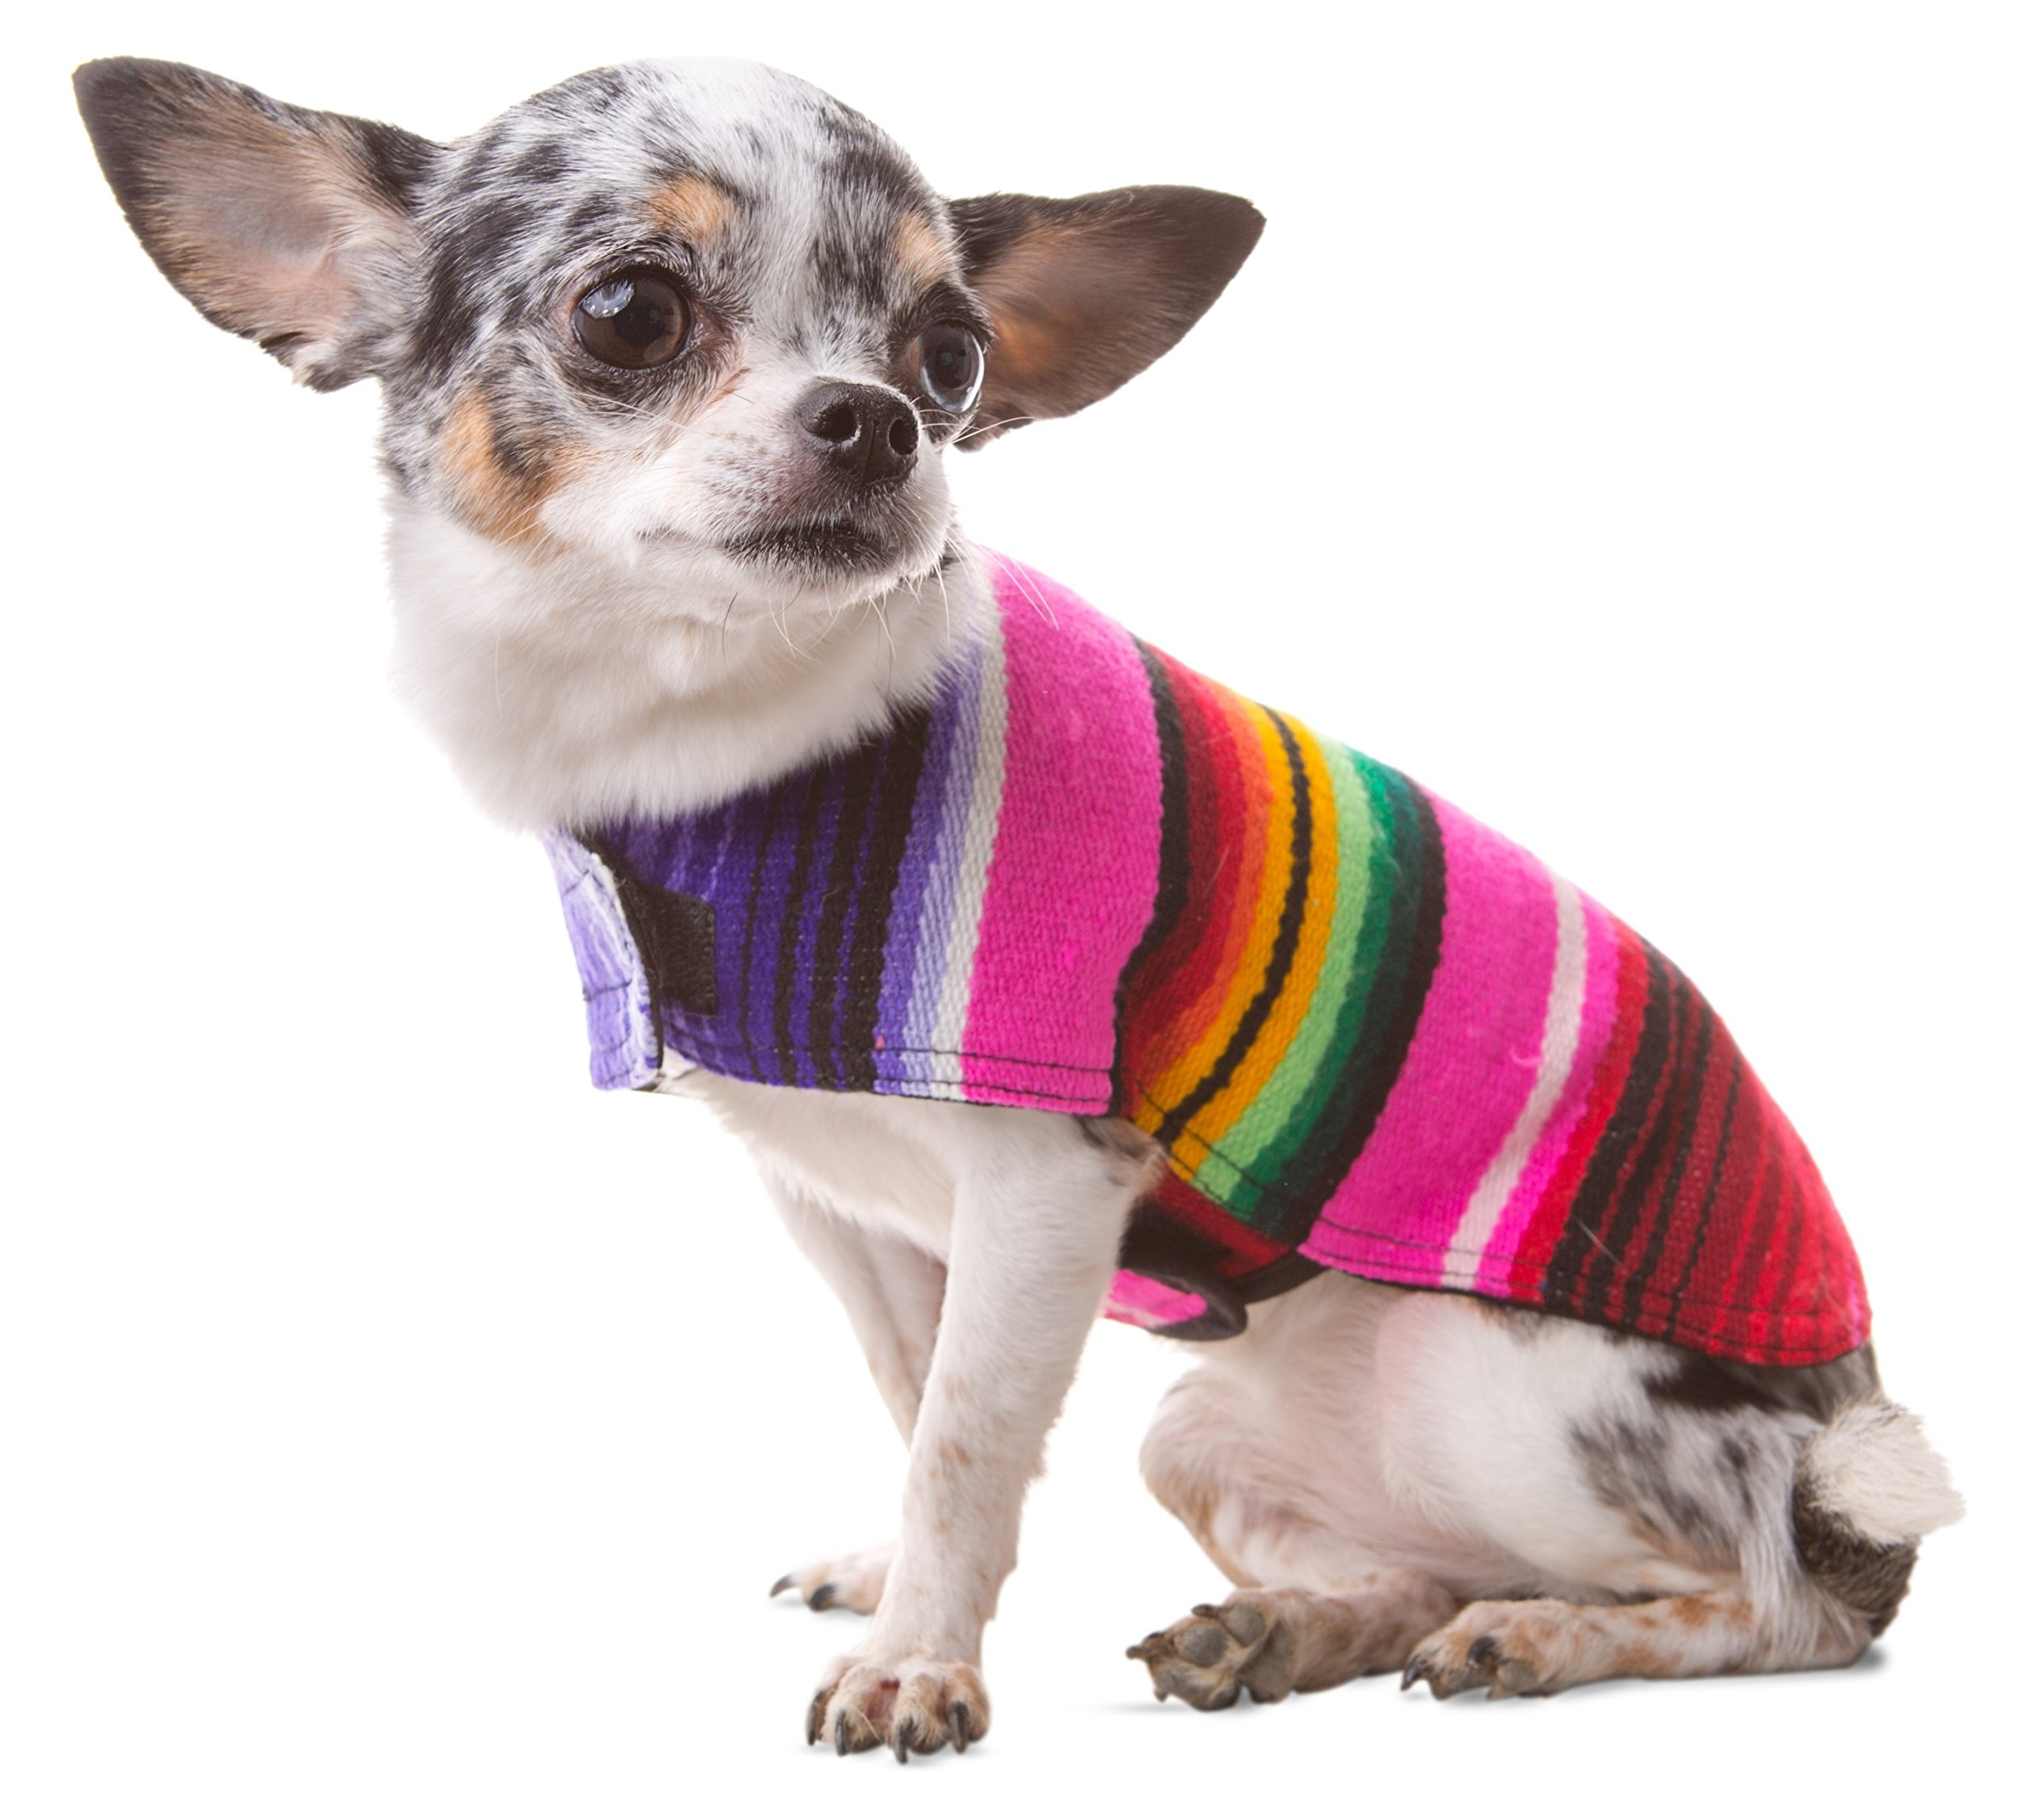 Baja Ponchos Dog Clothes - Handmade Dog Poncho from Authentic Mexican Blanket (Pink No Fringe, X-Small) by Baja Ponchos